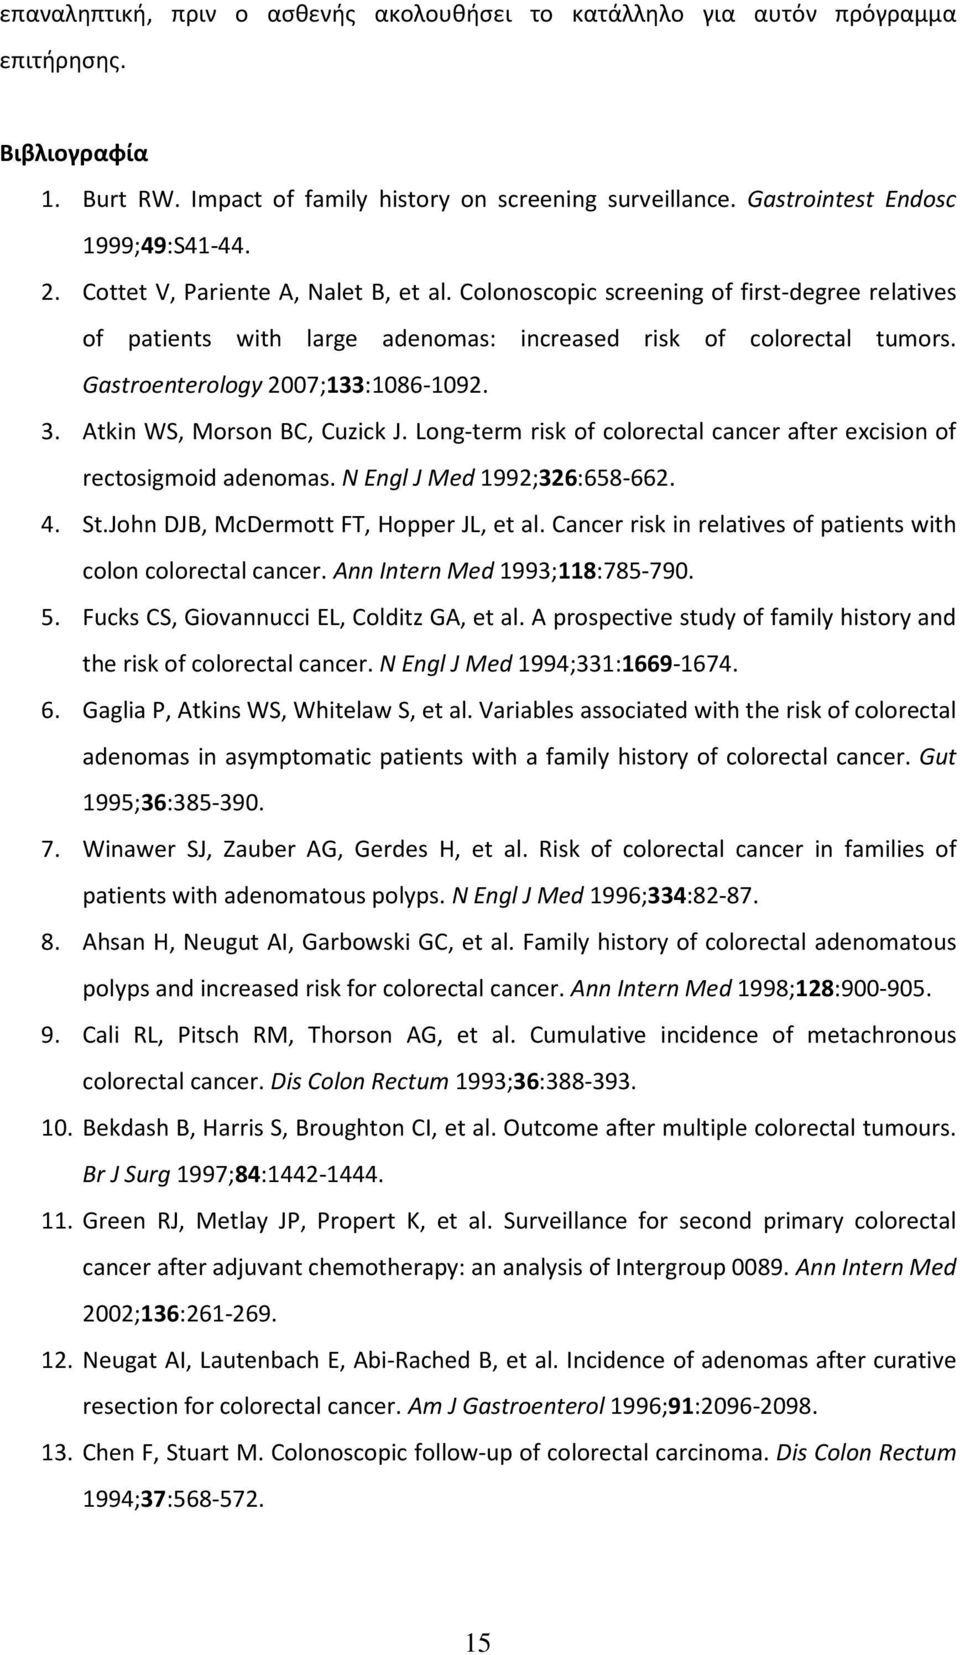 Atkin WS, Morson BC, Cuzick J. Long-term risk of colorectal cancer after excision of rectosigmoid adenomas. N Engl J Med 1992;326:658-662. 4. St.John DJB, McDermott FT, Hopper JL, et al.